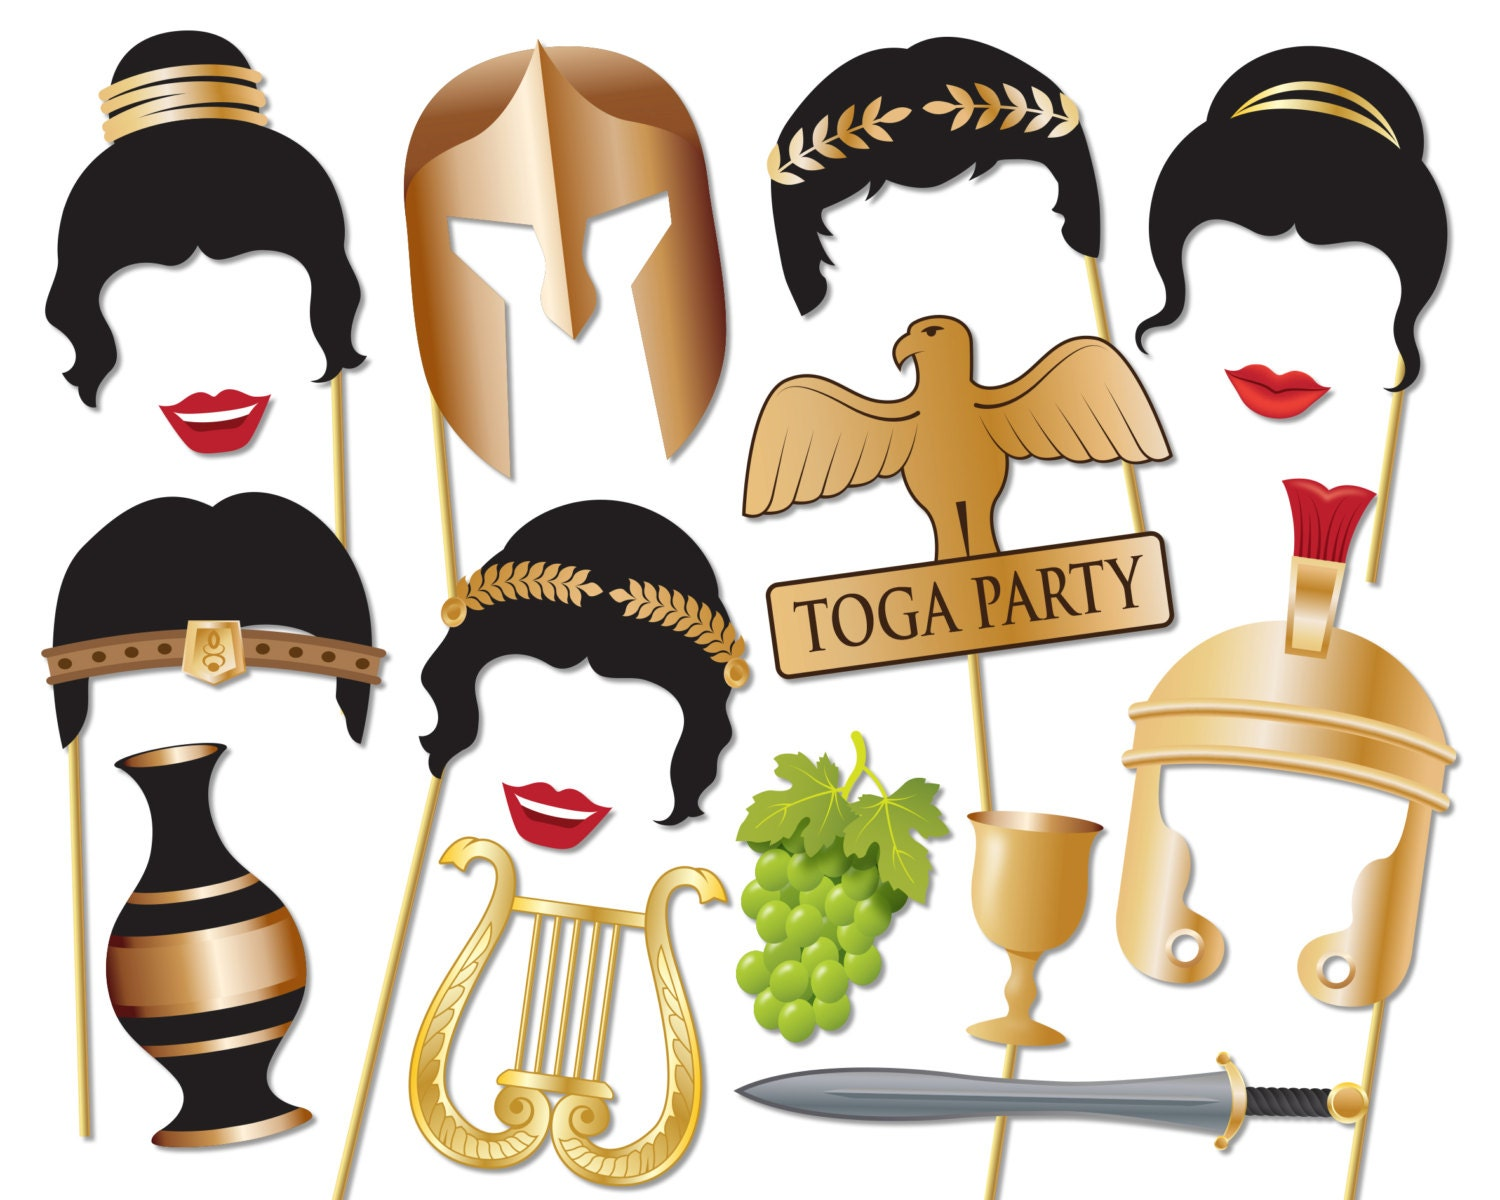 Toga party – Toga Party Invitations